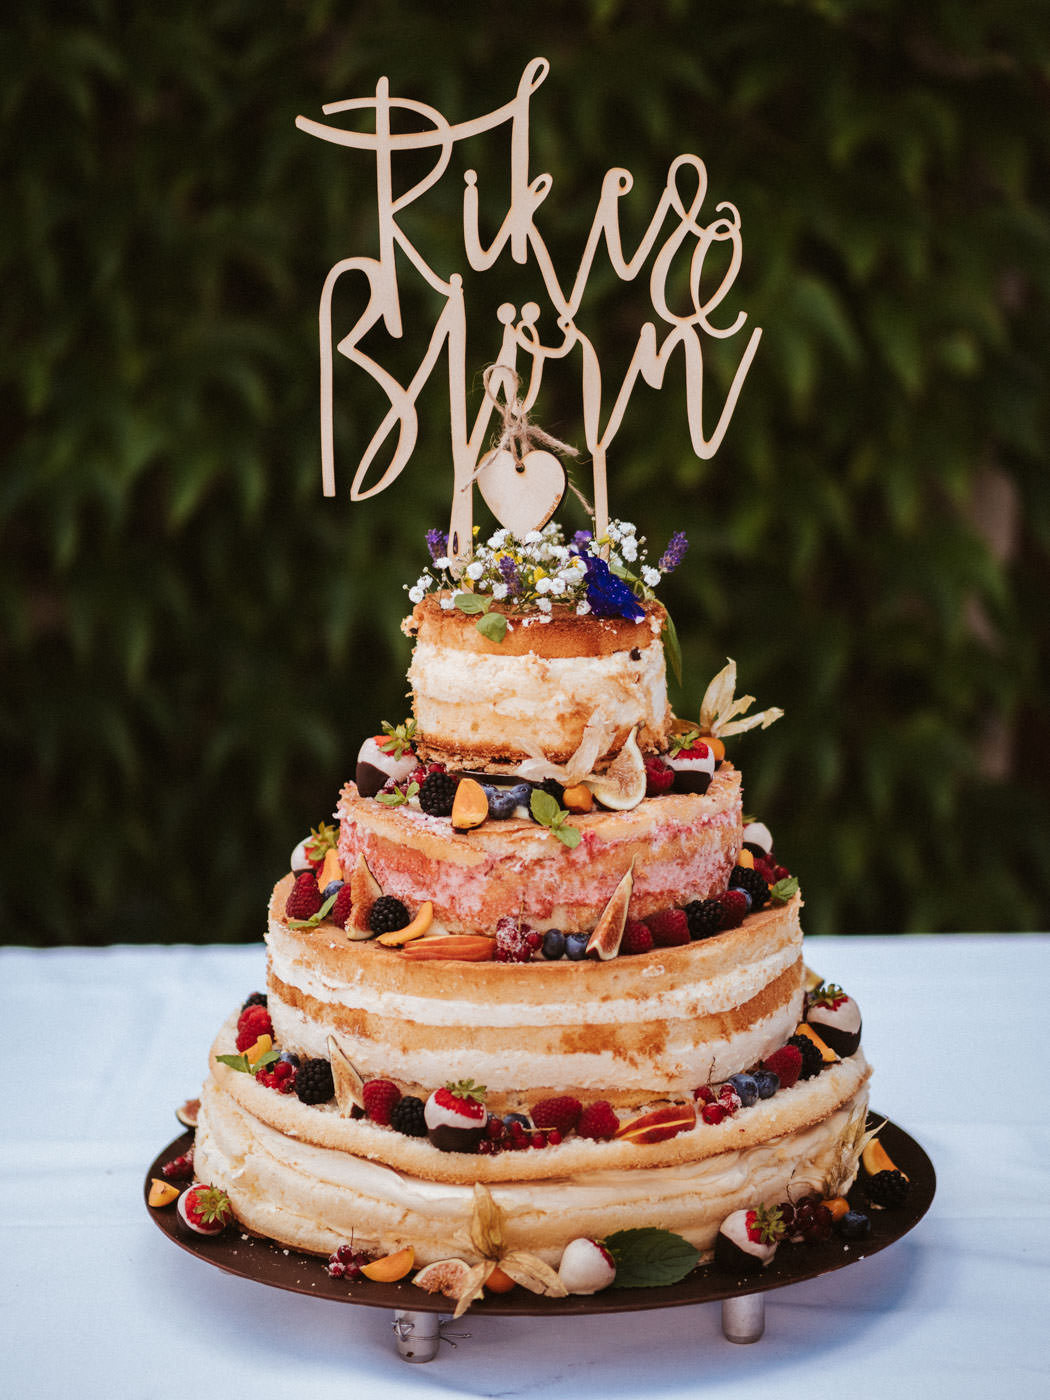 Naked Cake for the wedding, with fruits and flowers